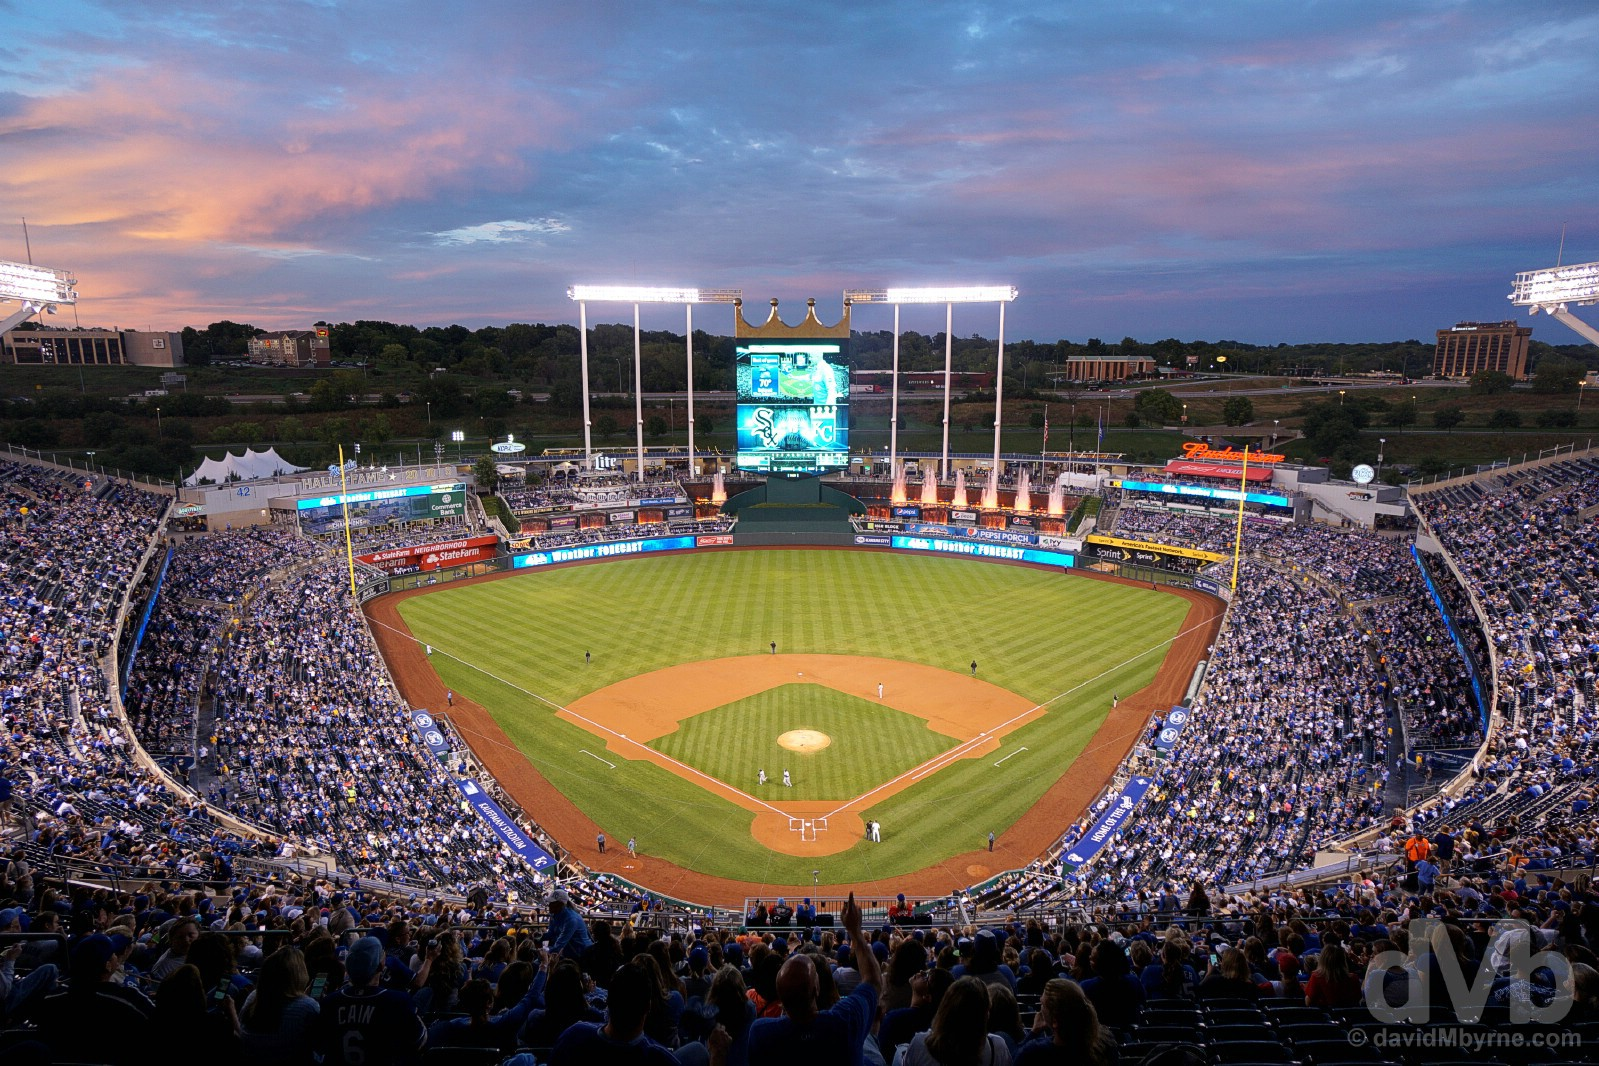 Royals Vs. White Sox, Kauffman Stadium, Kansas City, Missouri, USA. September 16, 2016.